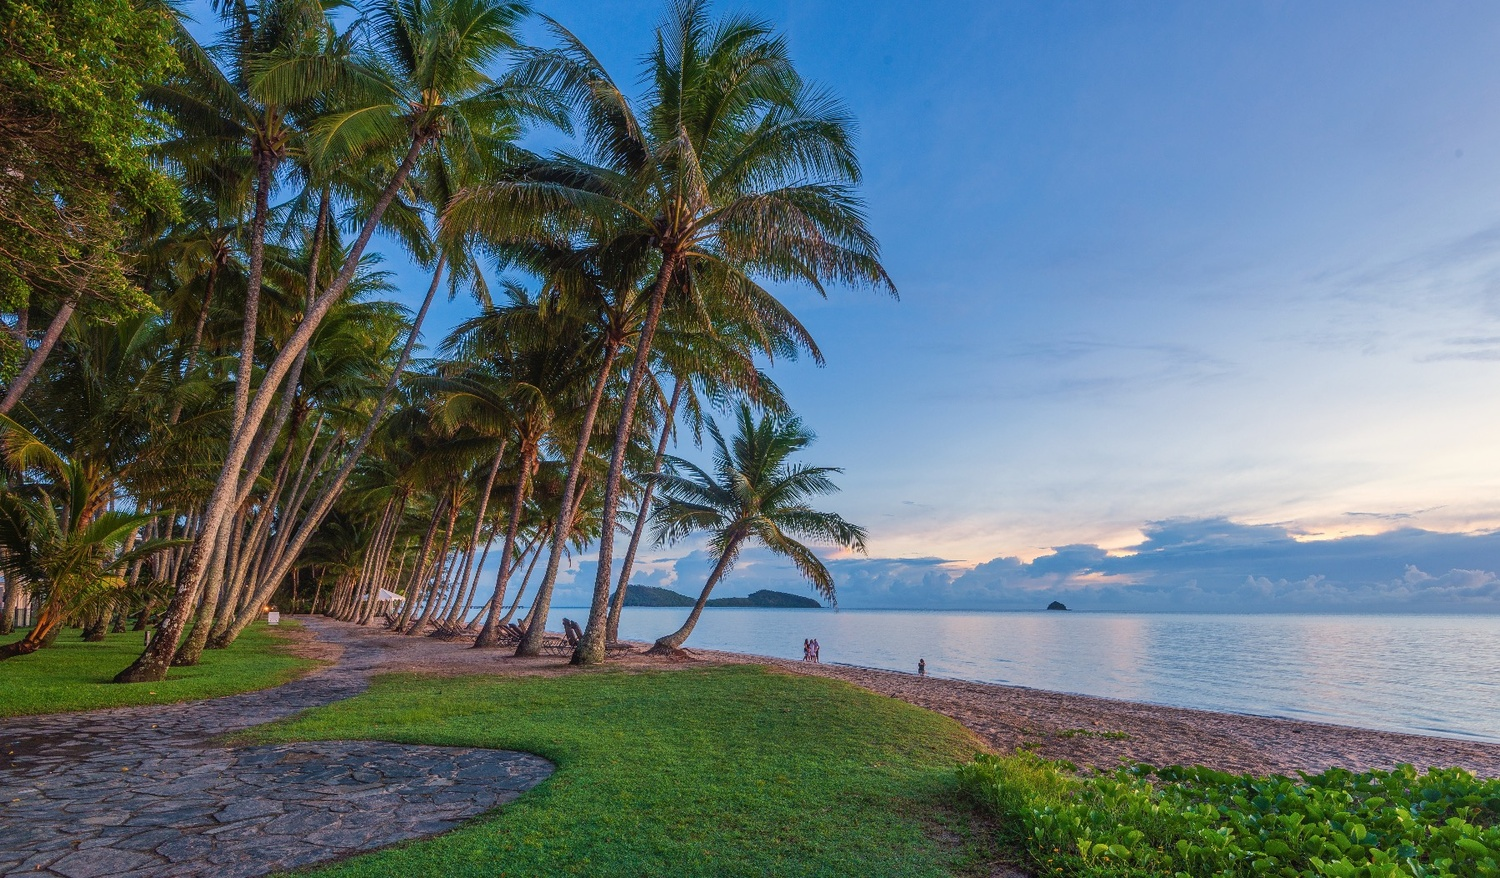 Family Photos in Palm Cove by Shane Smith